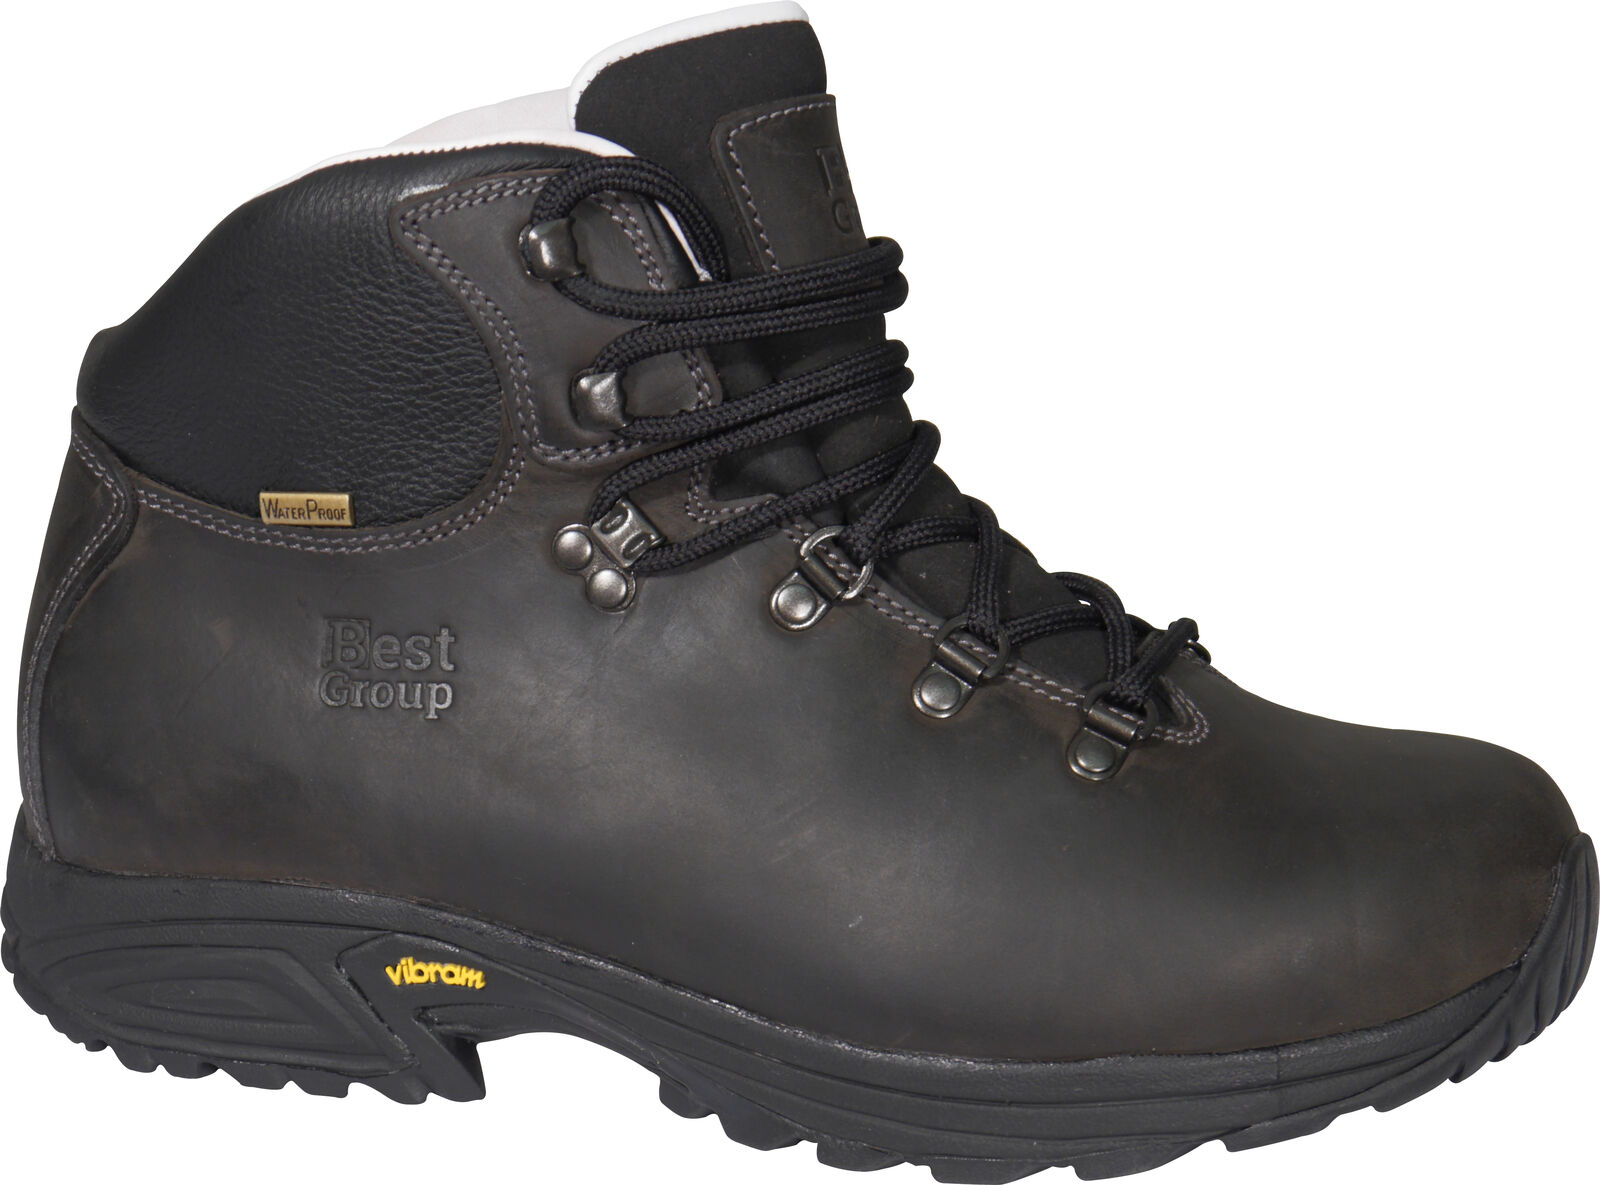 Best Group Storm Leather Waterproof Walking Hiking Boots Mens Womens